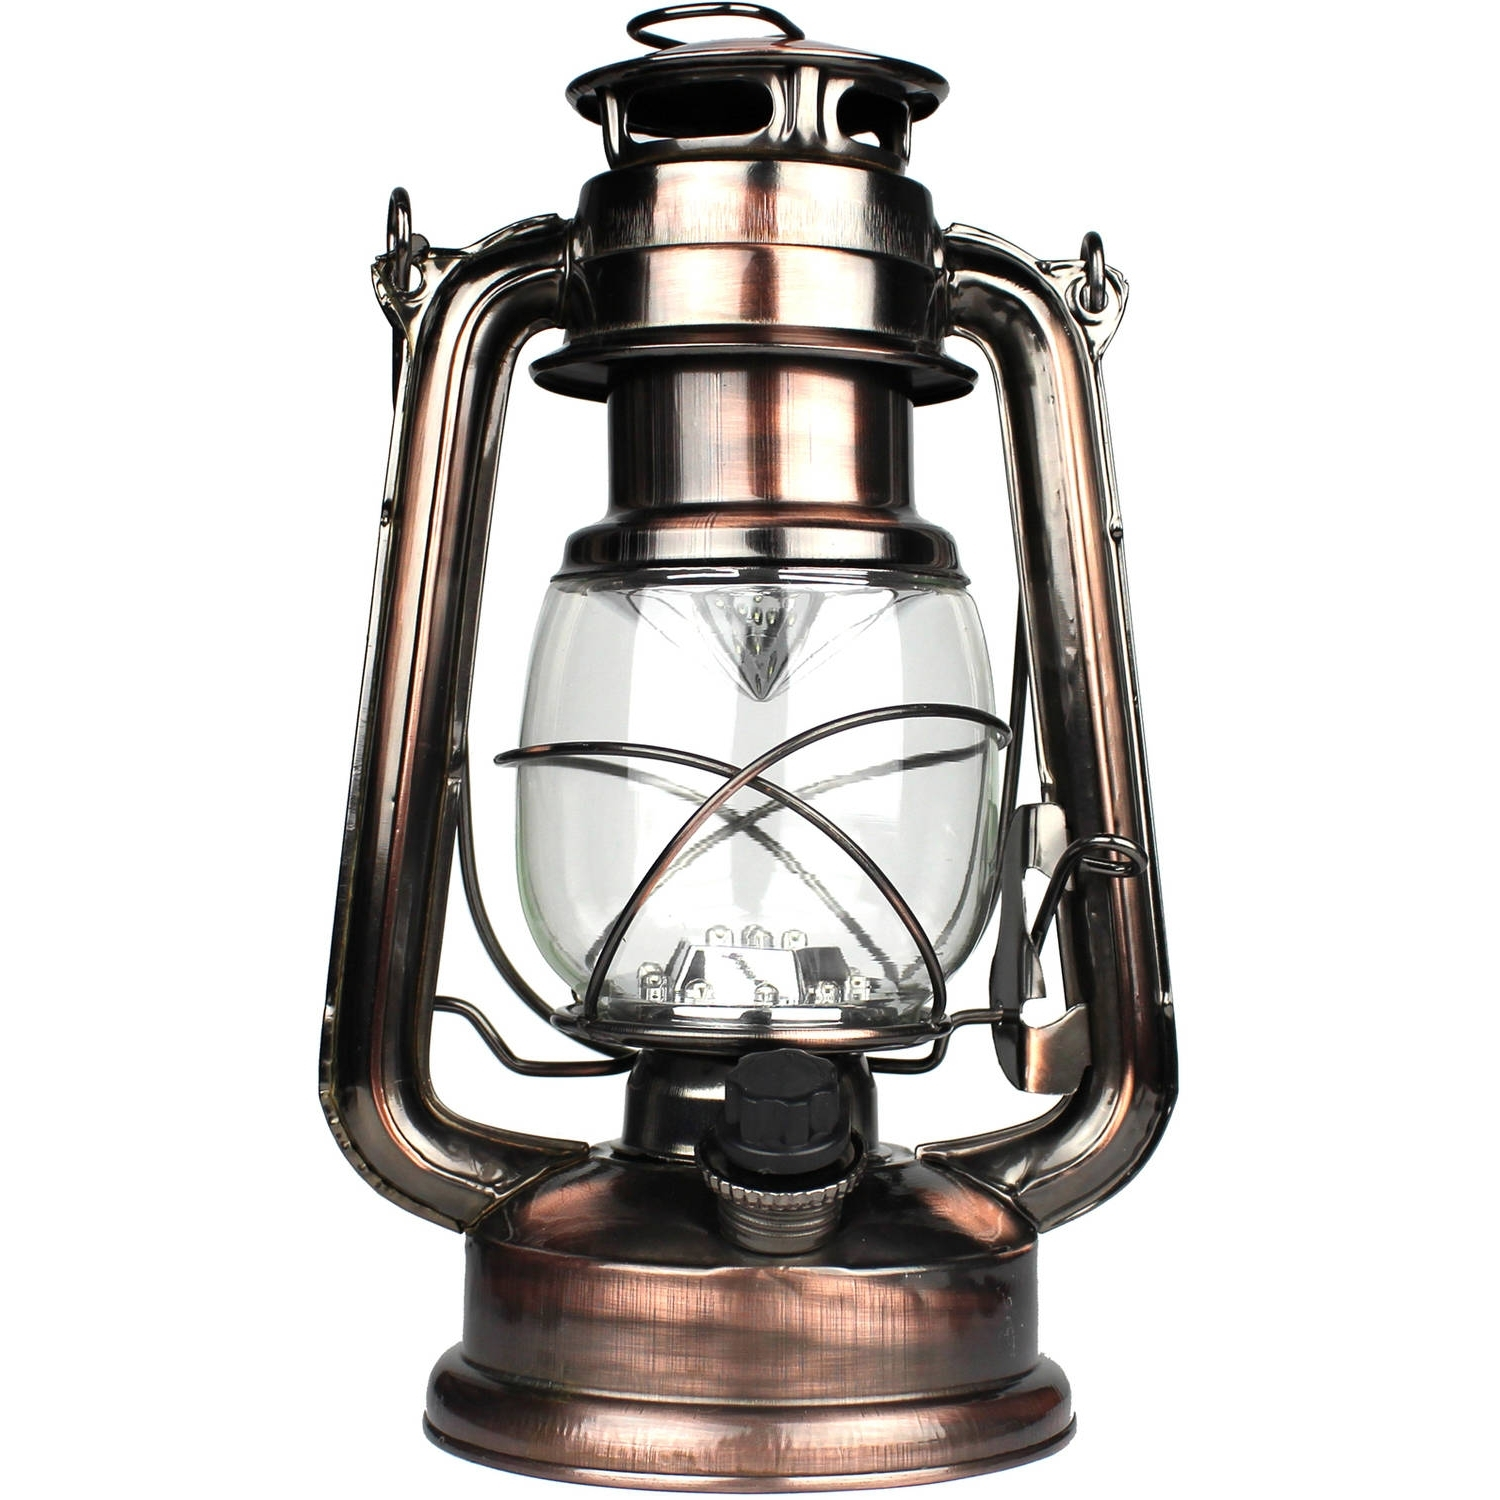 Most Recently Released Outdoor Hanging Lanterns With Battery Operated With Regard To Ozark Trail Lantern, 75 Lumens For 28 Hours On 3 Aa Batteries (View 8 of 20)